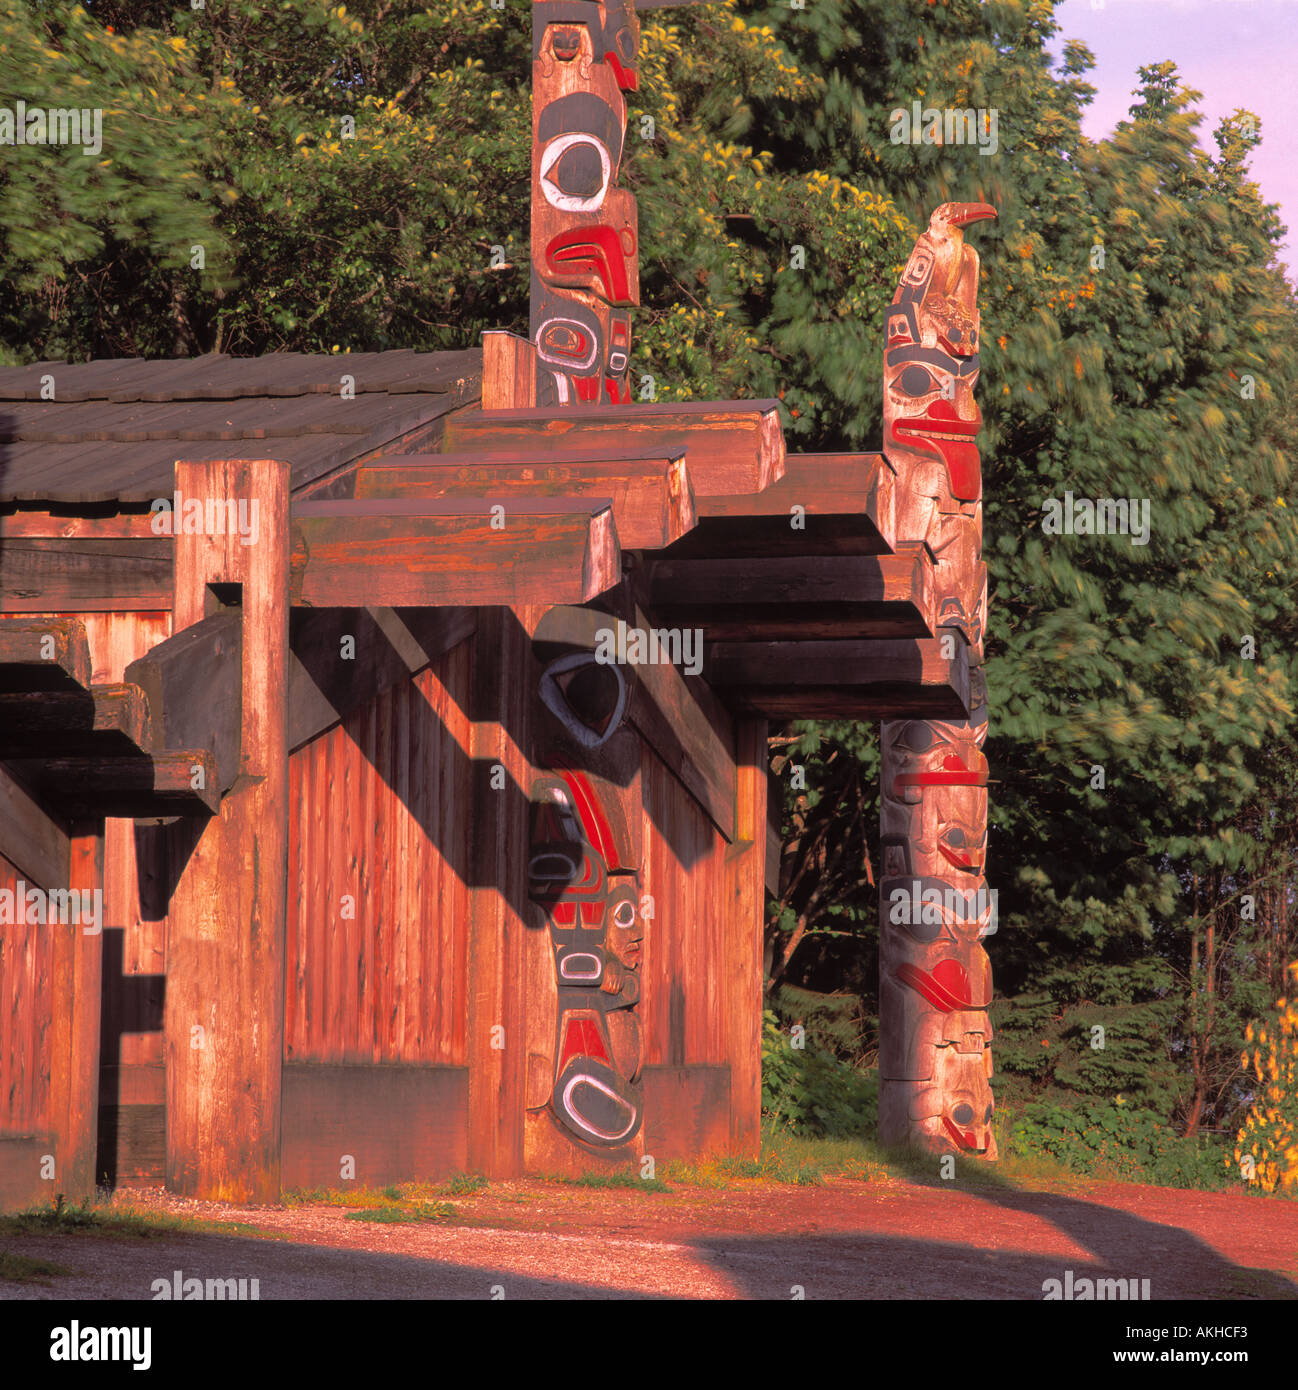 Haida Totem Poles and Plank House at Museum of Anthropology ... on native american wigwams, native american indian shelters, native american wattle and daub, native american teepee, native american yurok history, native american indian tribe diorama, native american yurt, native american paper artwork, native american adobe houses, native american wickiup, native american sites in nh, native americans igloos, native american houses school project, native american wooden houses, native american grass houses, native american bolo ties for men, native american homes, native american round houses, native american lodge, native american hogan,